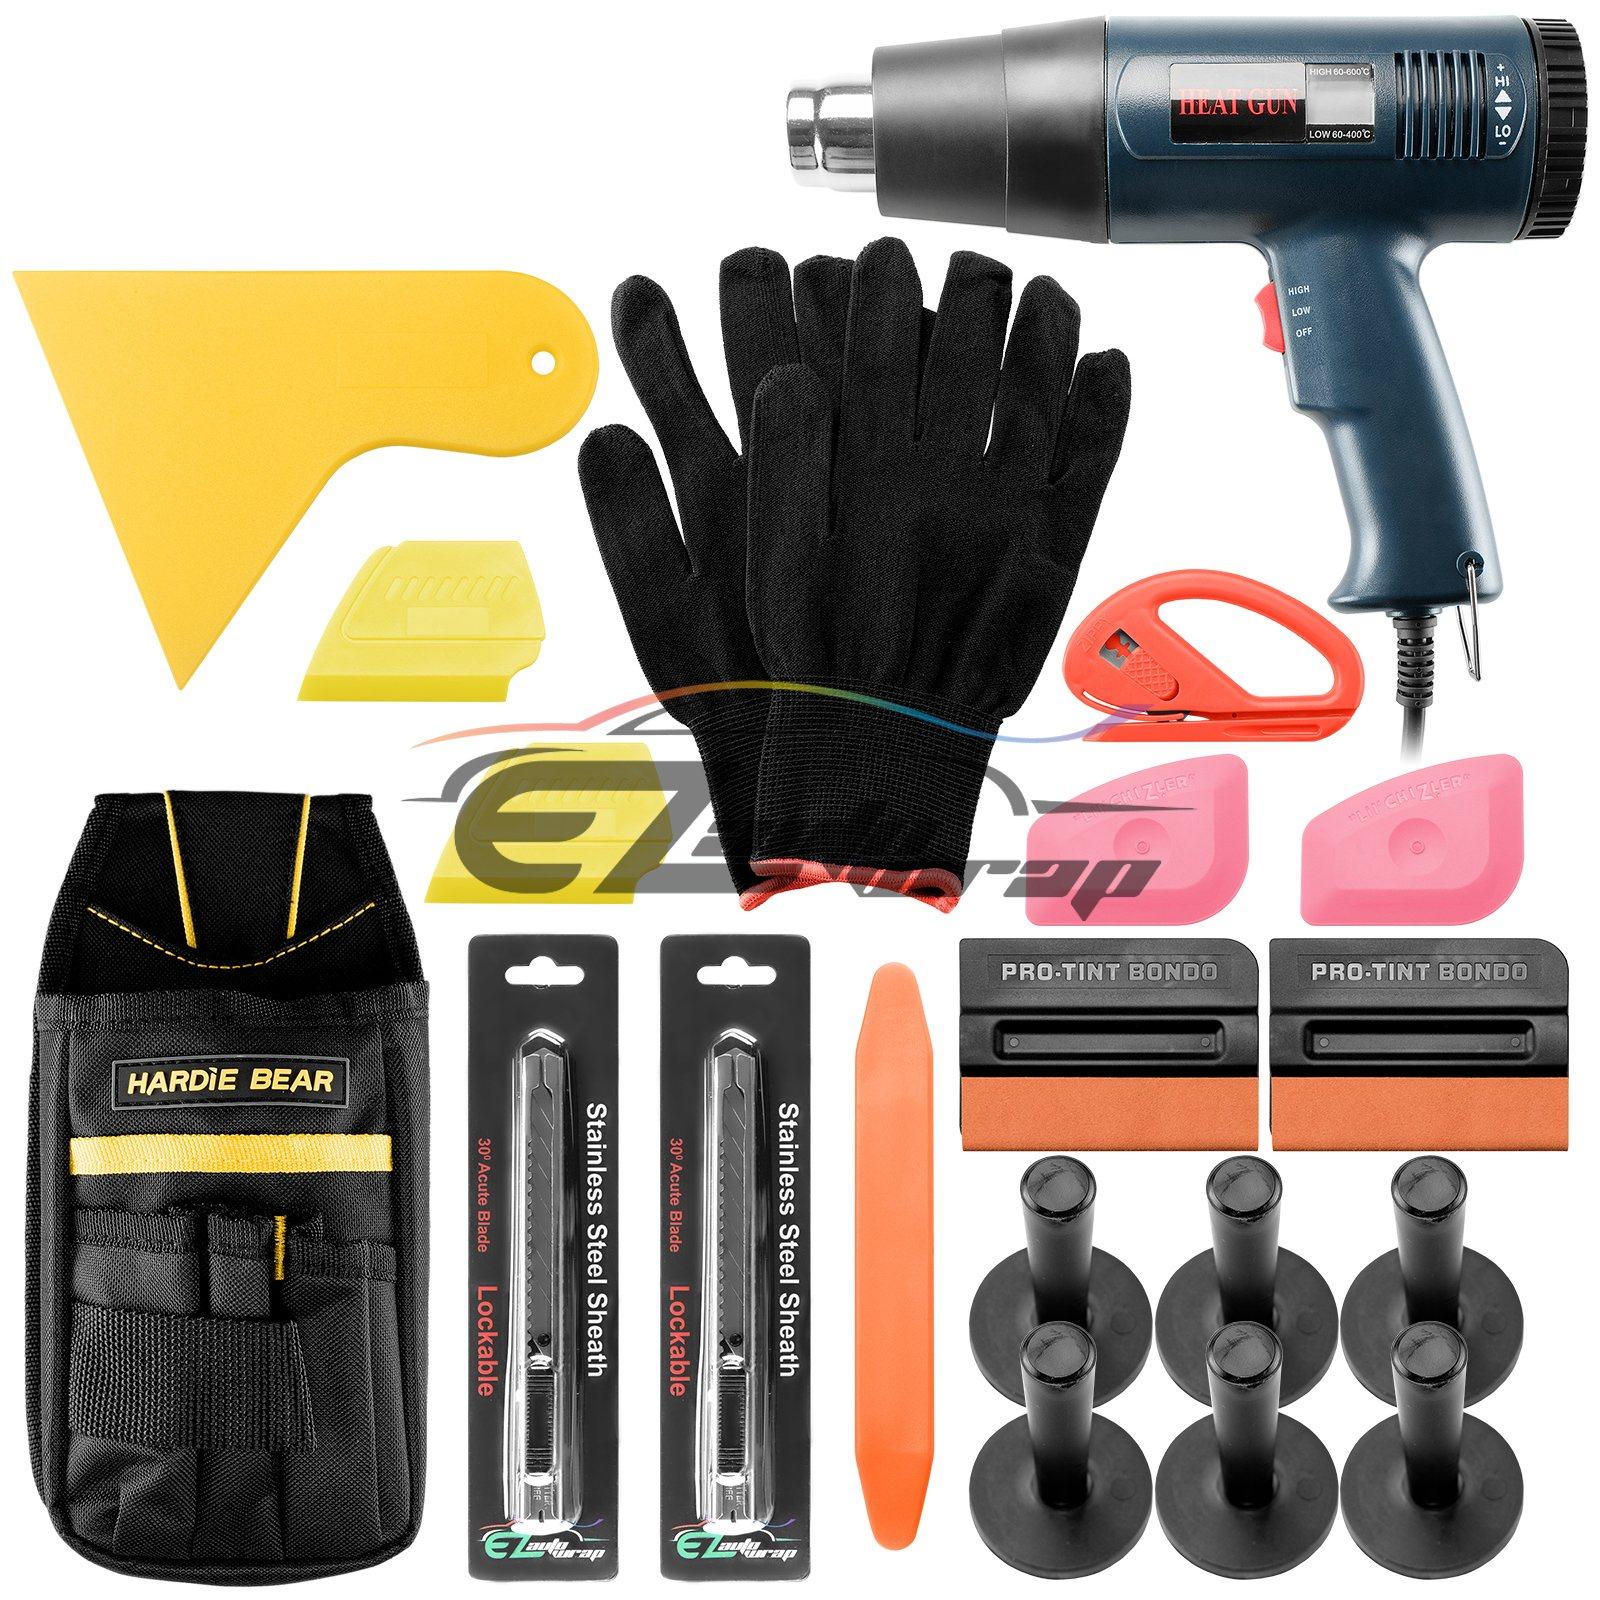 EZAUTOWRAP Professional Vinyl Wrap Film Application Tool Kit Scratchfree Felt Squeegees Heat Gun Lil Chizlers Gloves Tool Bag Snitty Cutter 30 Degree Razor Knife Magnets TK12